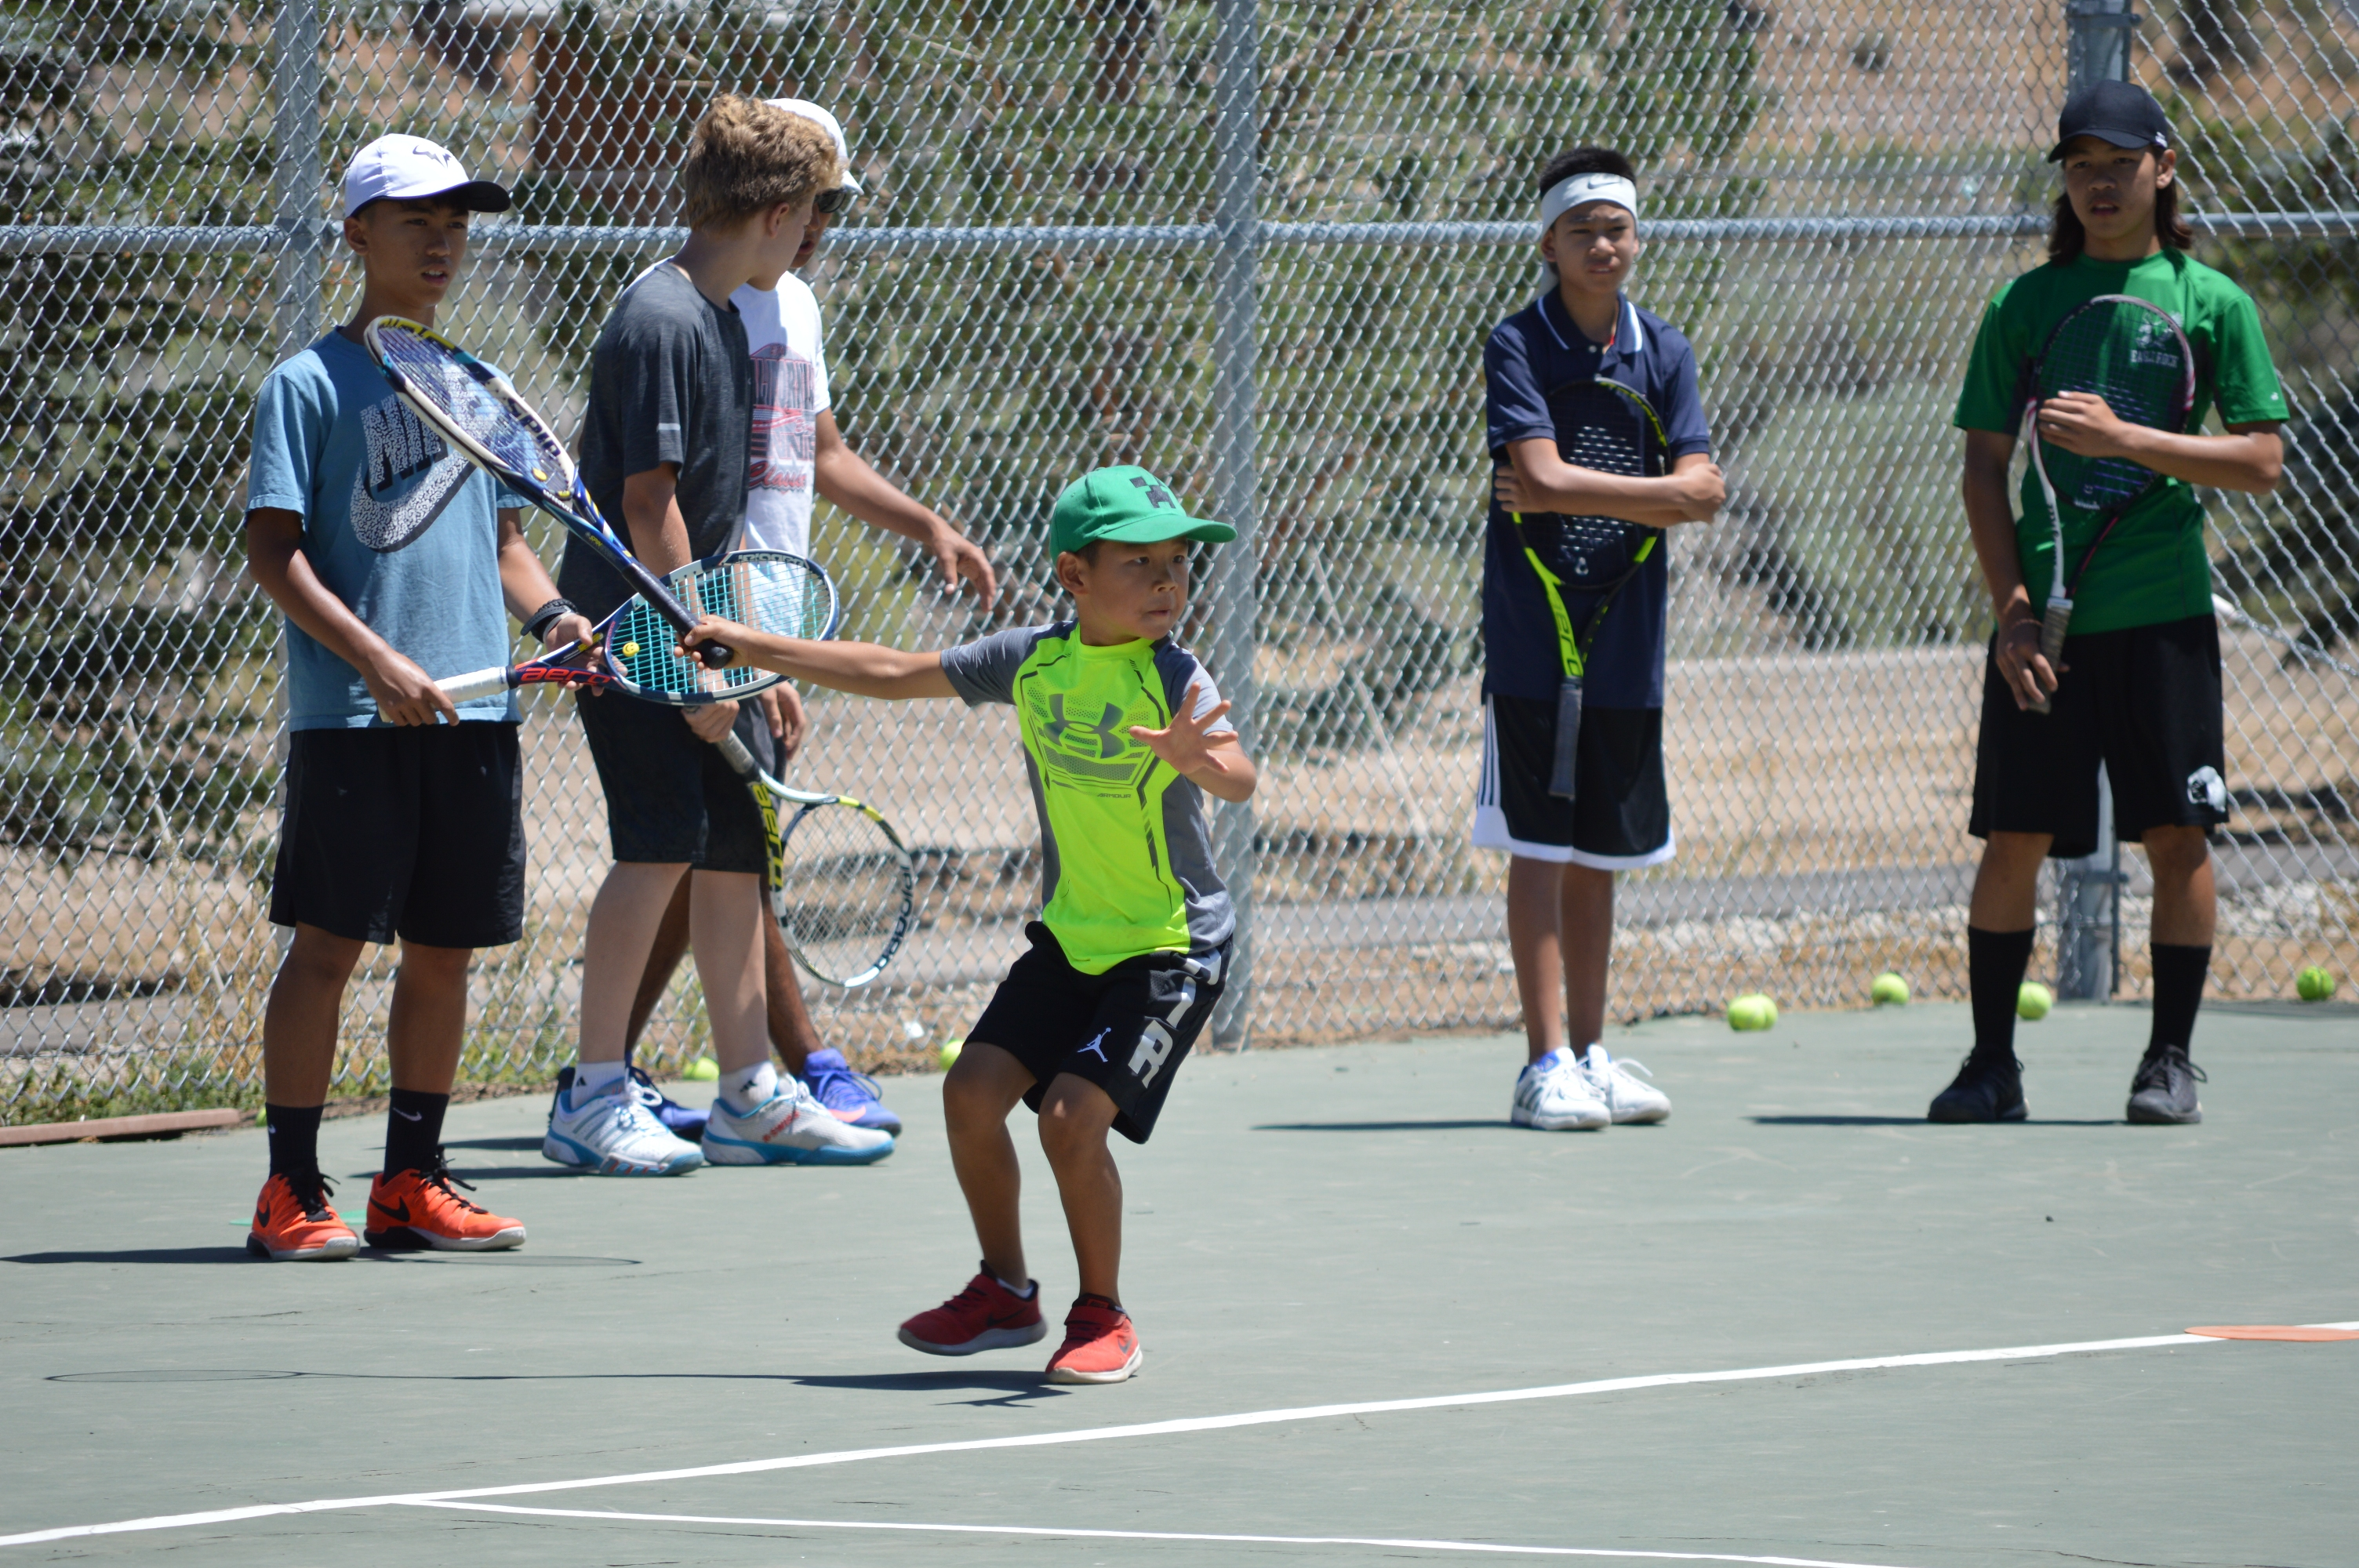 Day vs. Extended Day Tennis Camp: What's the Difference?